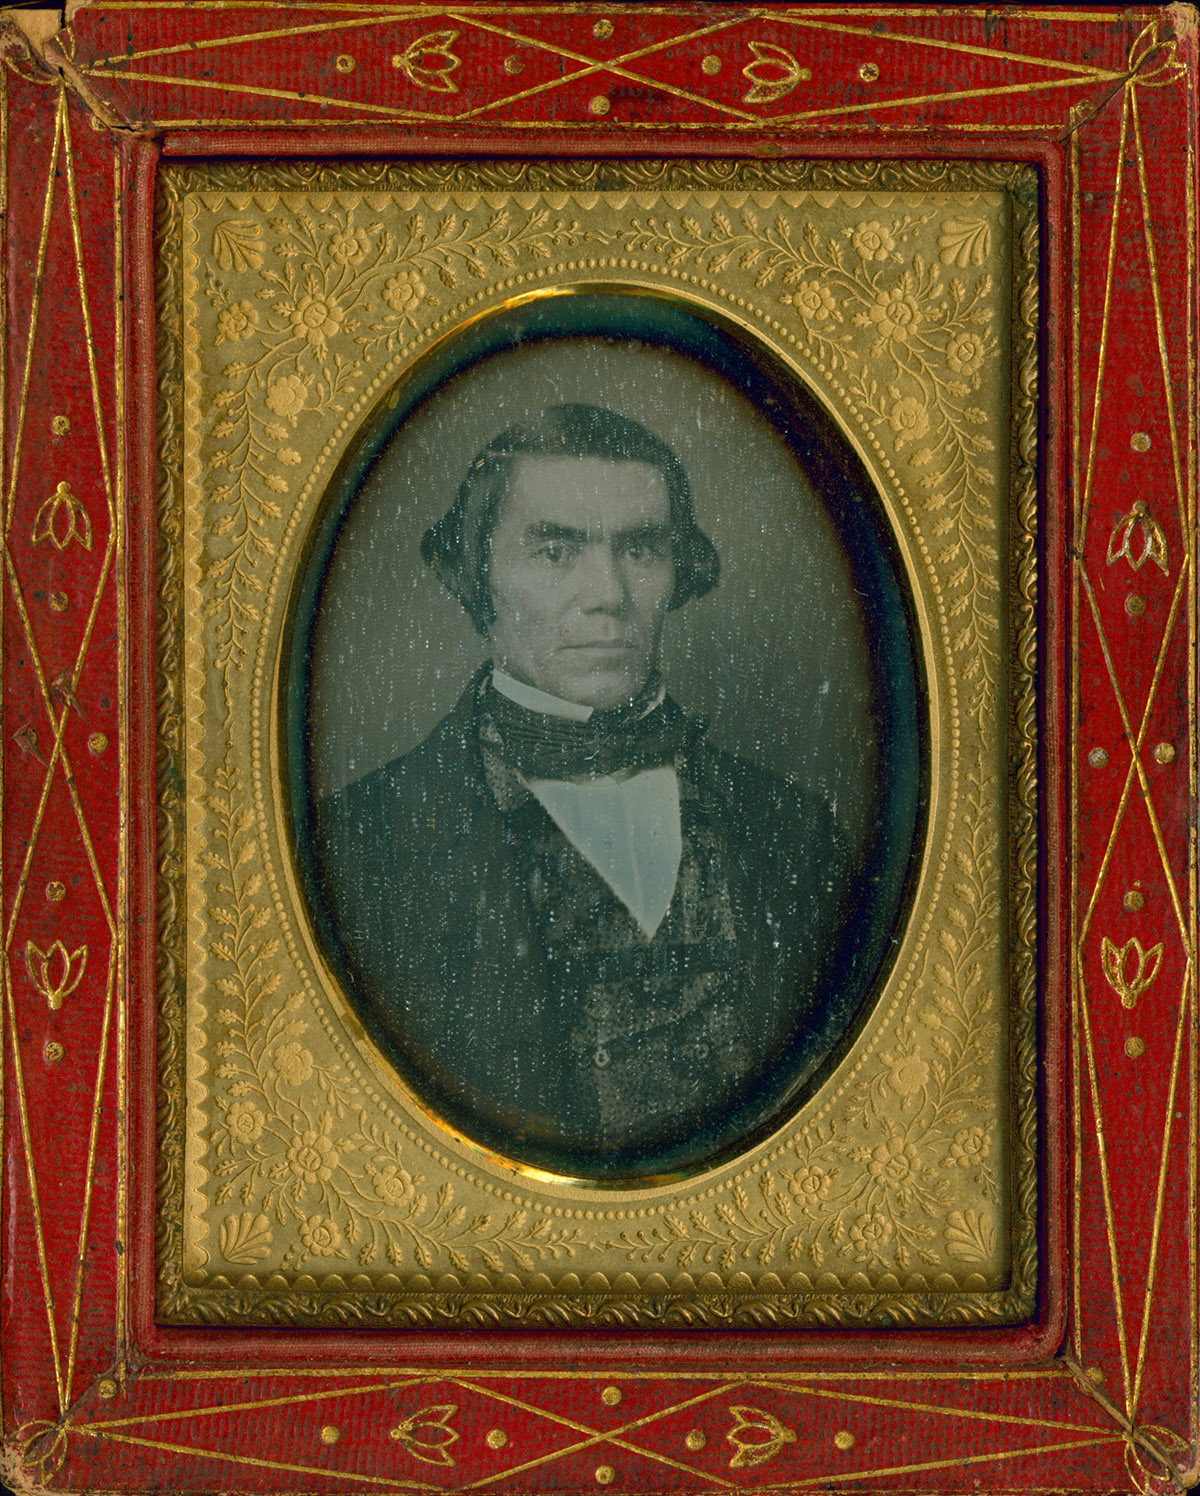 Daguerreotype portrait of Silas Armstrong, n.d., image courtesy of Kansas Room Special Collections, Kansas City Kansas, Public Library